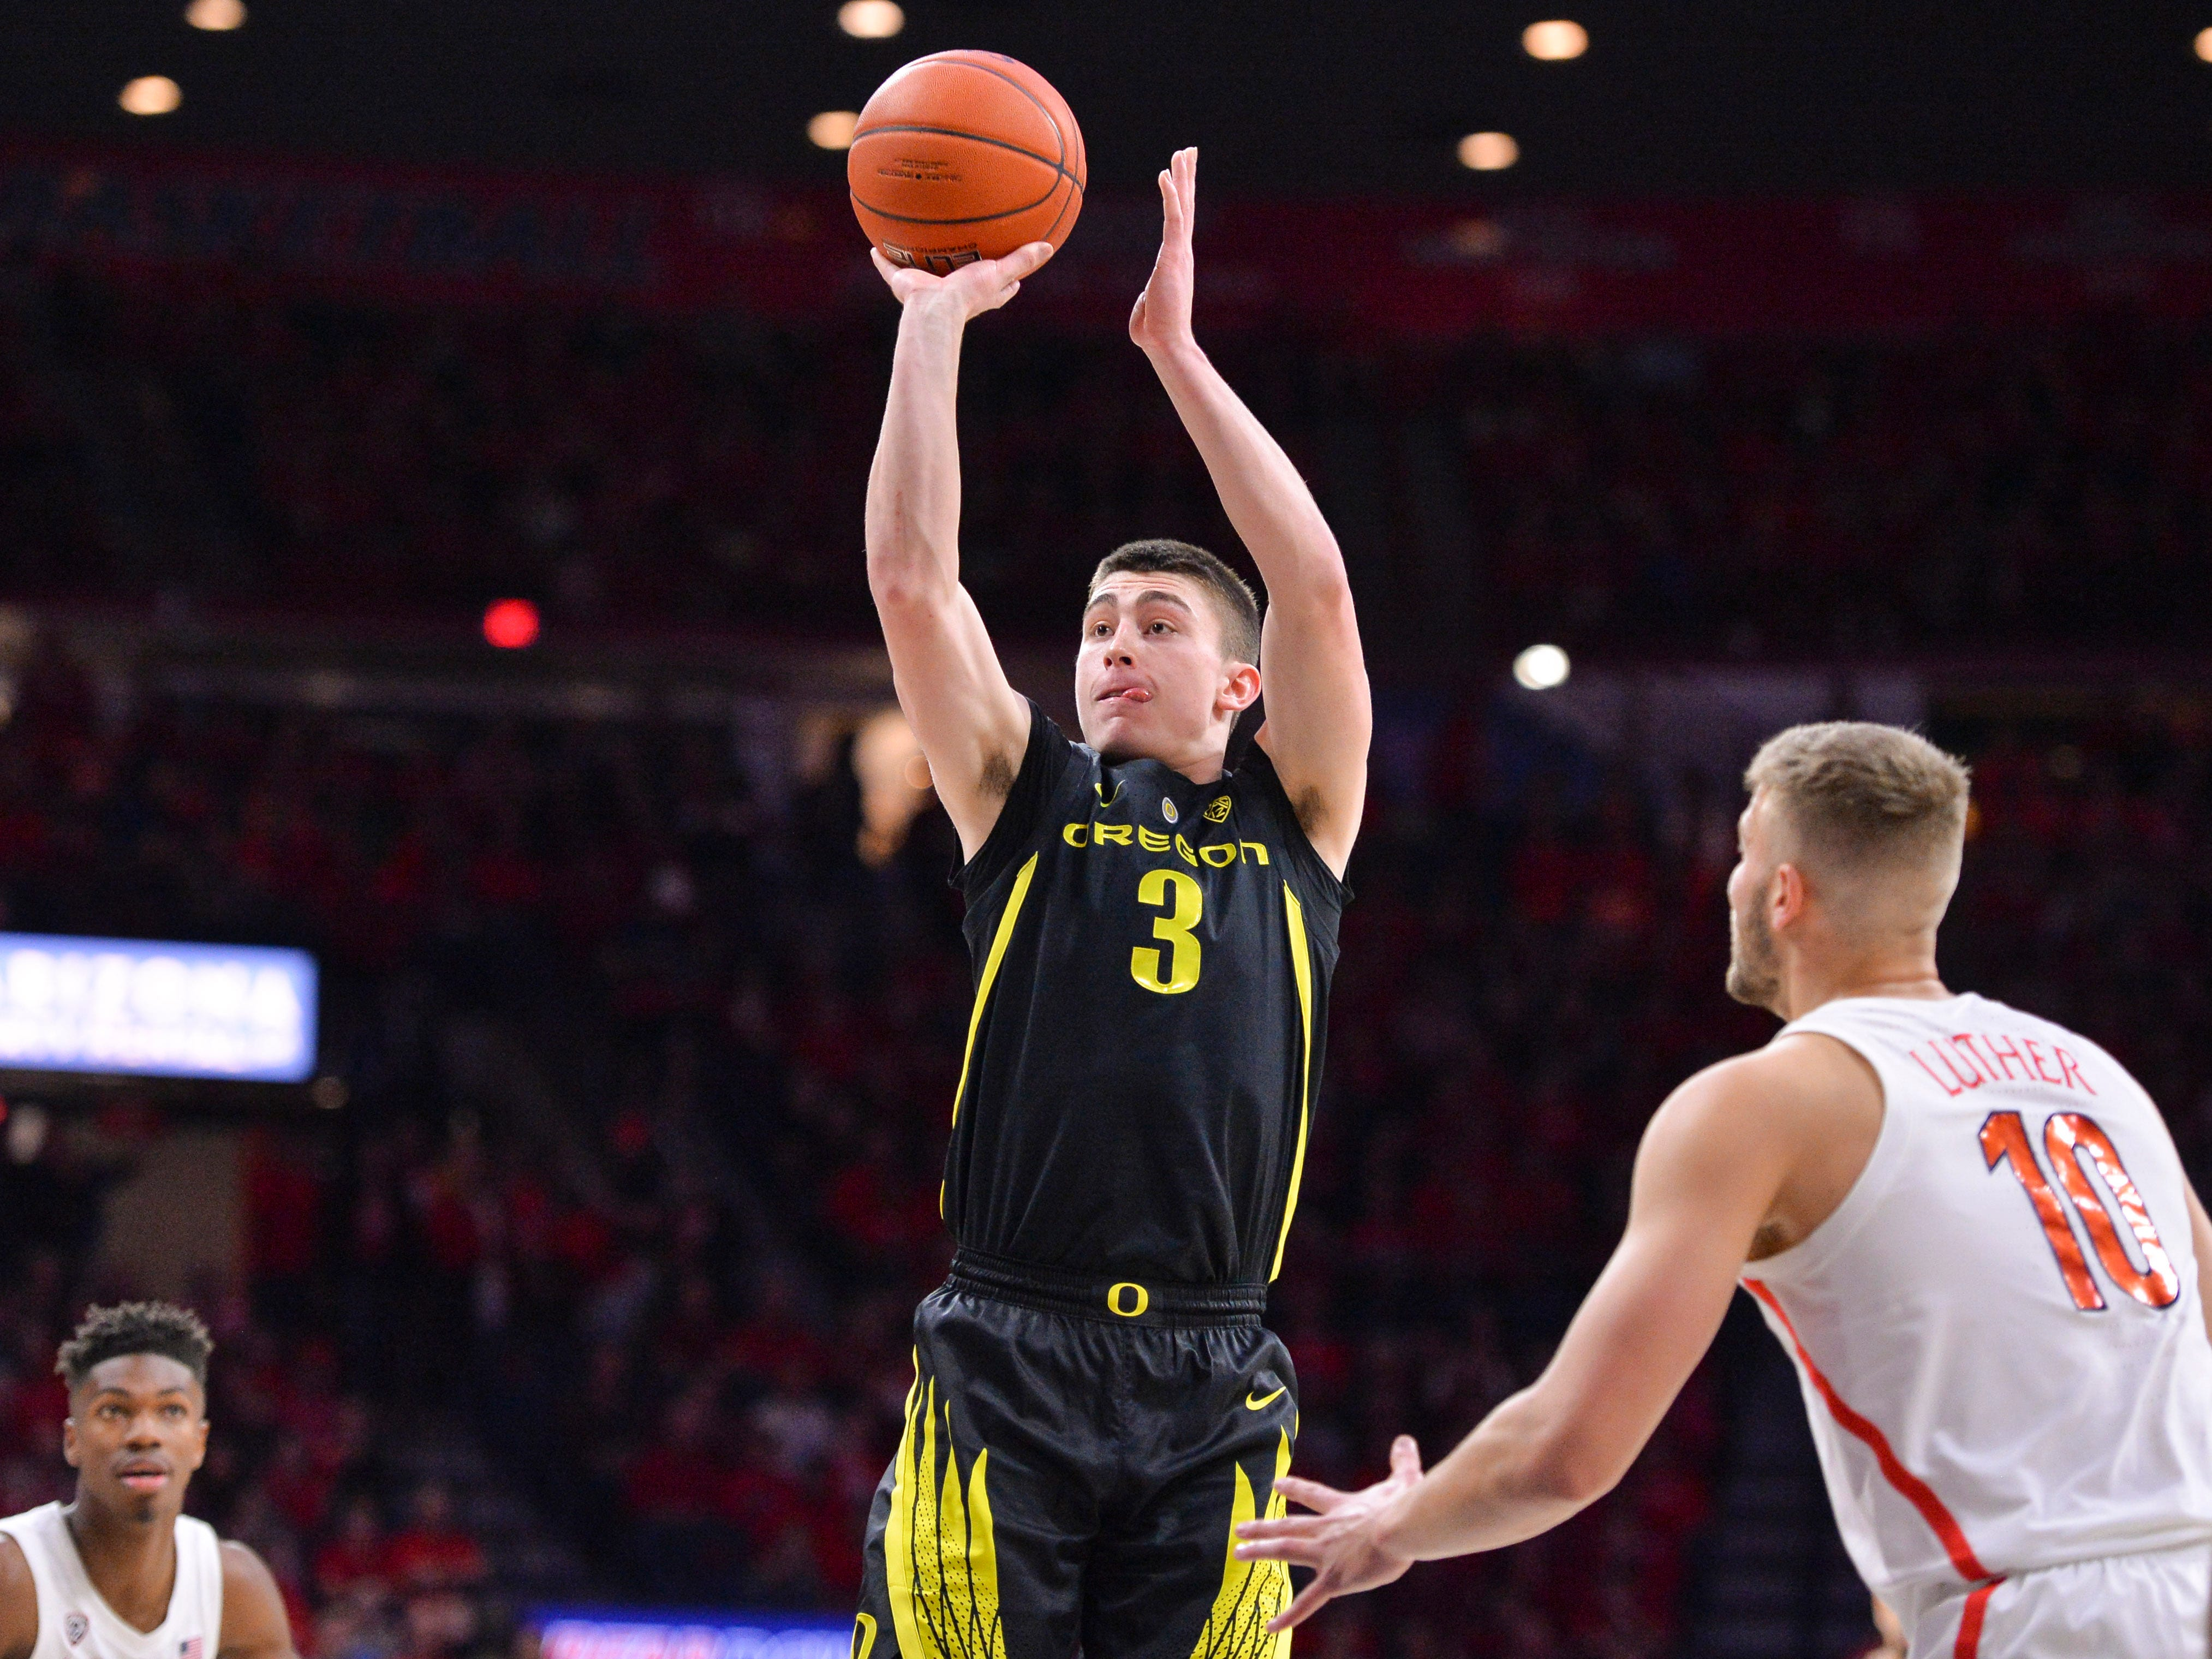 Jan 17, 2019; Tucson, AZ, USA; Oregon Ducks guard Payton Pritchard (3) shoots the ball as Arizona Wildcats forward Ryan Luther (10) defends during the first half at McKale Center. Mandatory Credit: Casey Sapio-USA TODAY Sports